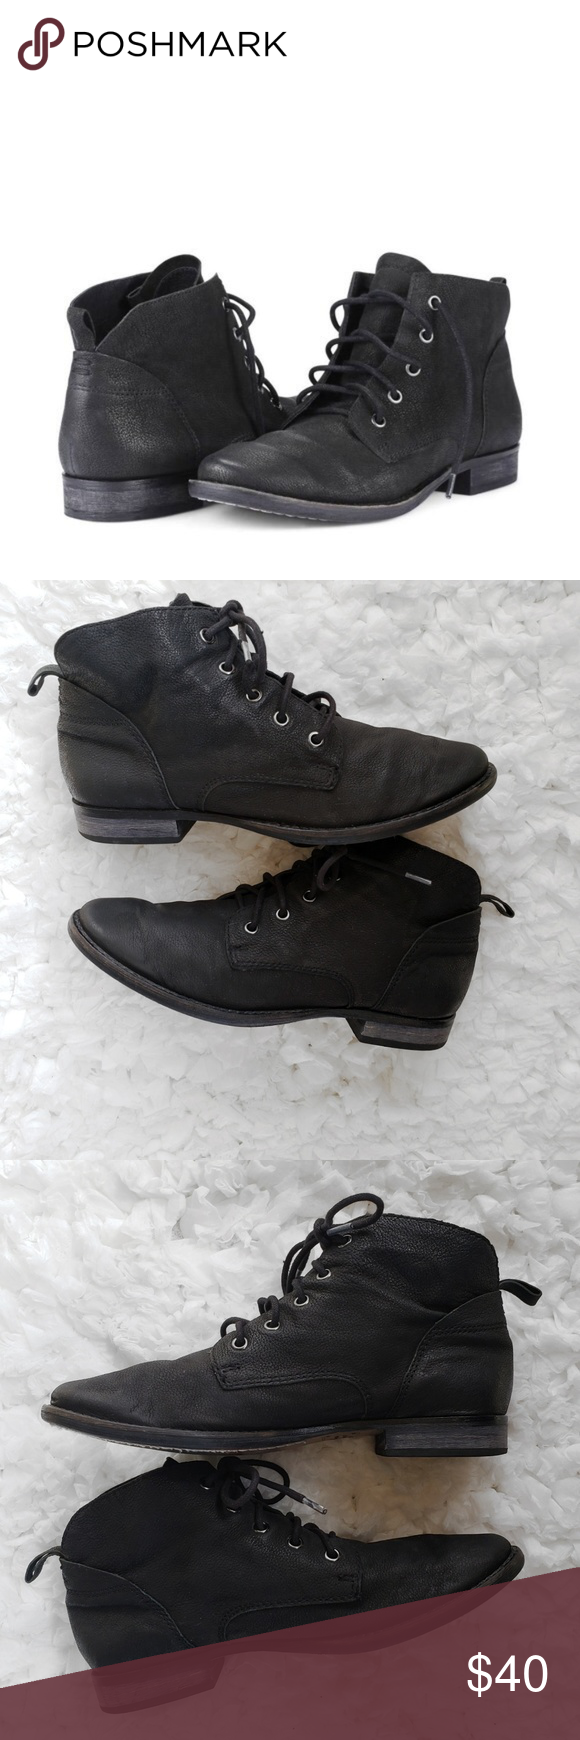 21da5d8a51c2b Sam Edelman Mare Black Leather Ankle Boots Well cared for and in excellent  condition. With